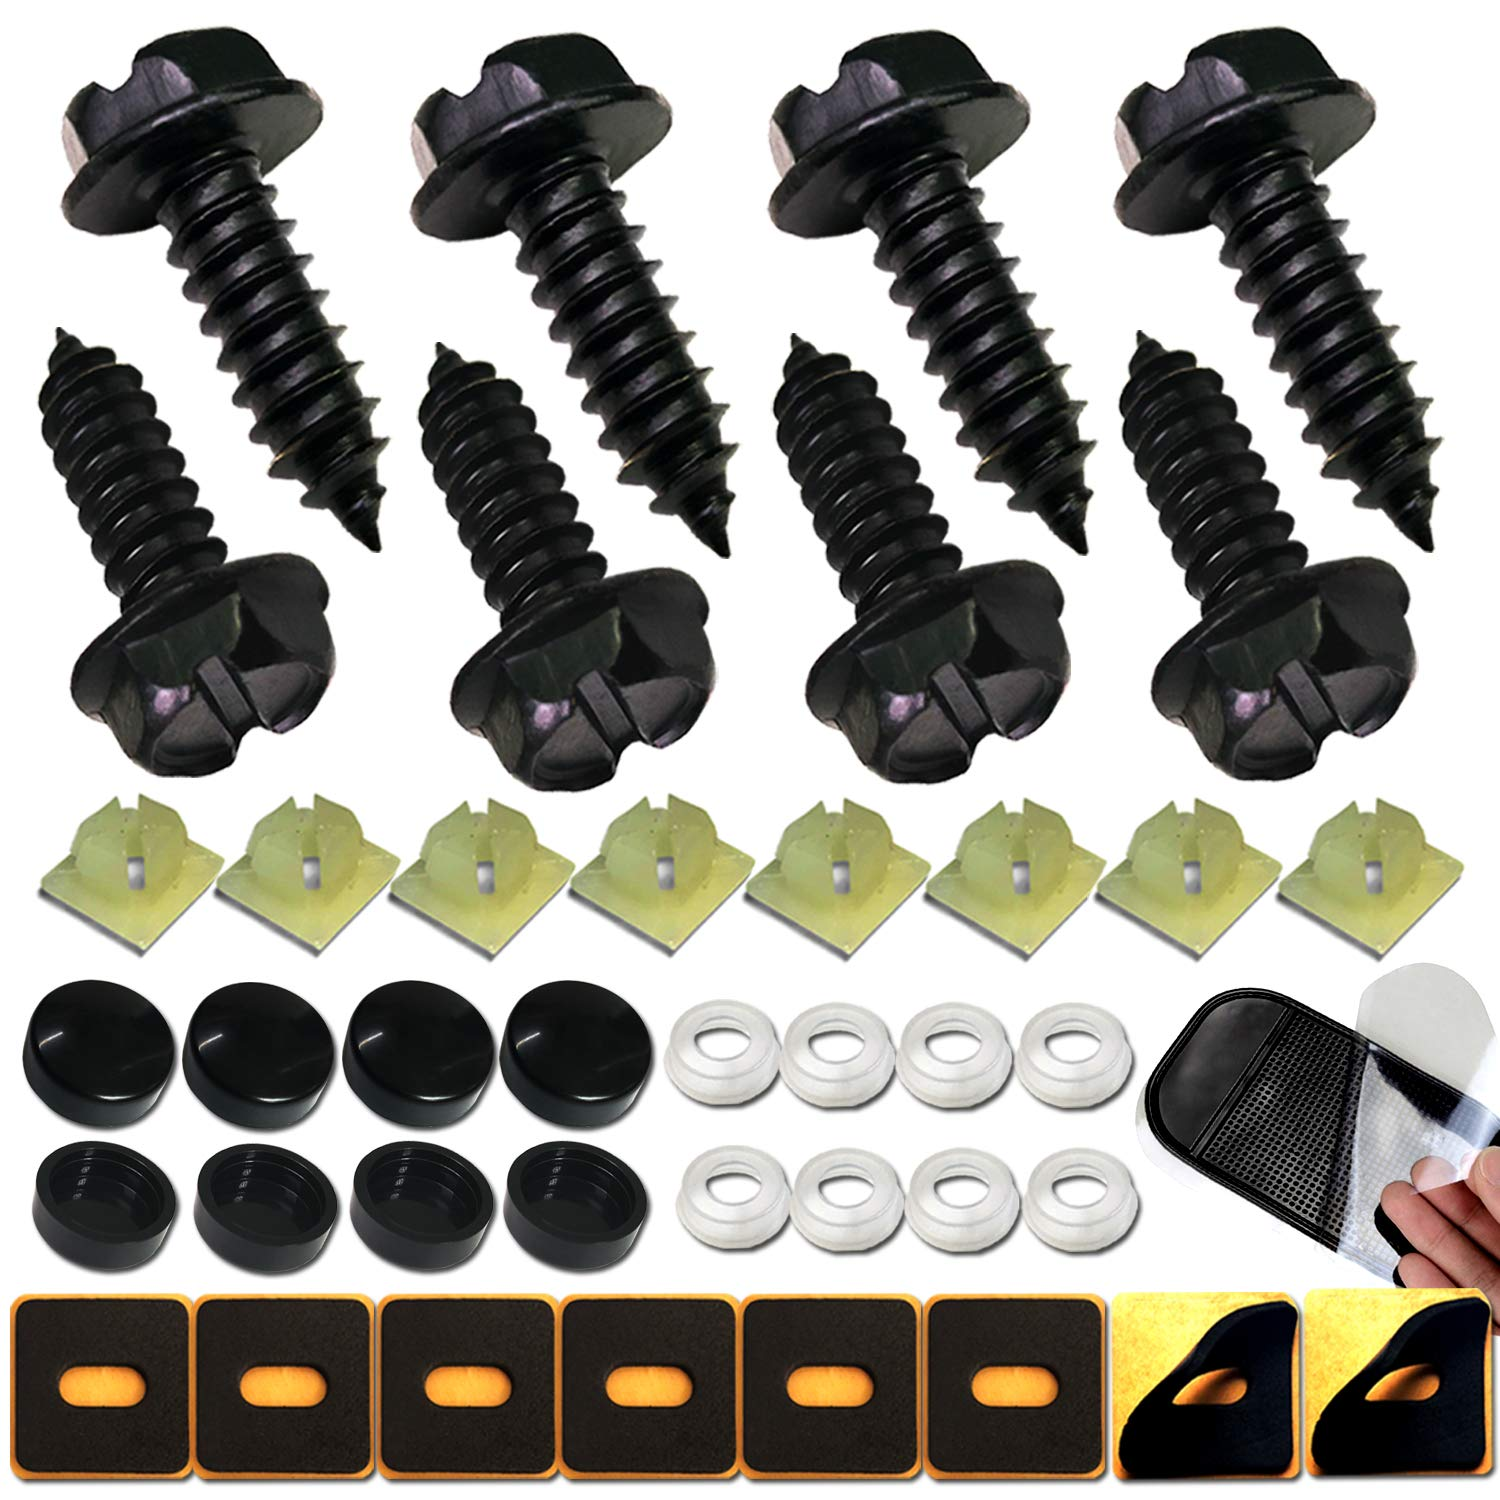 4 License Plate Tag Frame IMPORT Metric Fasteners Screws Bolts Black Caps cover